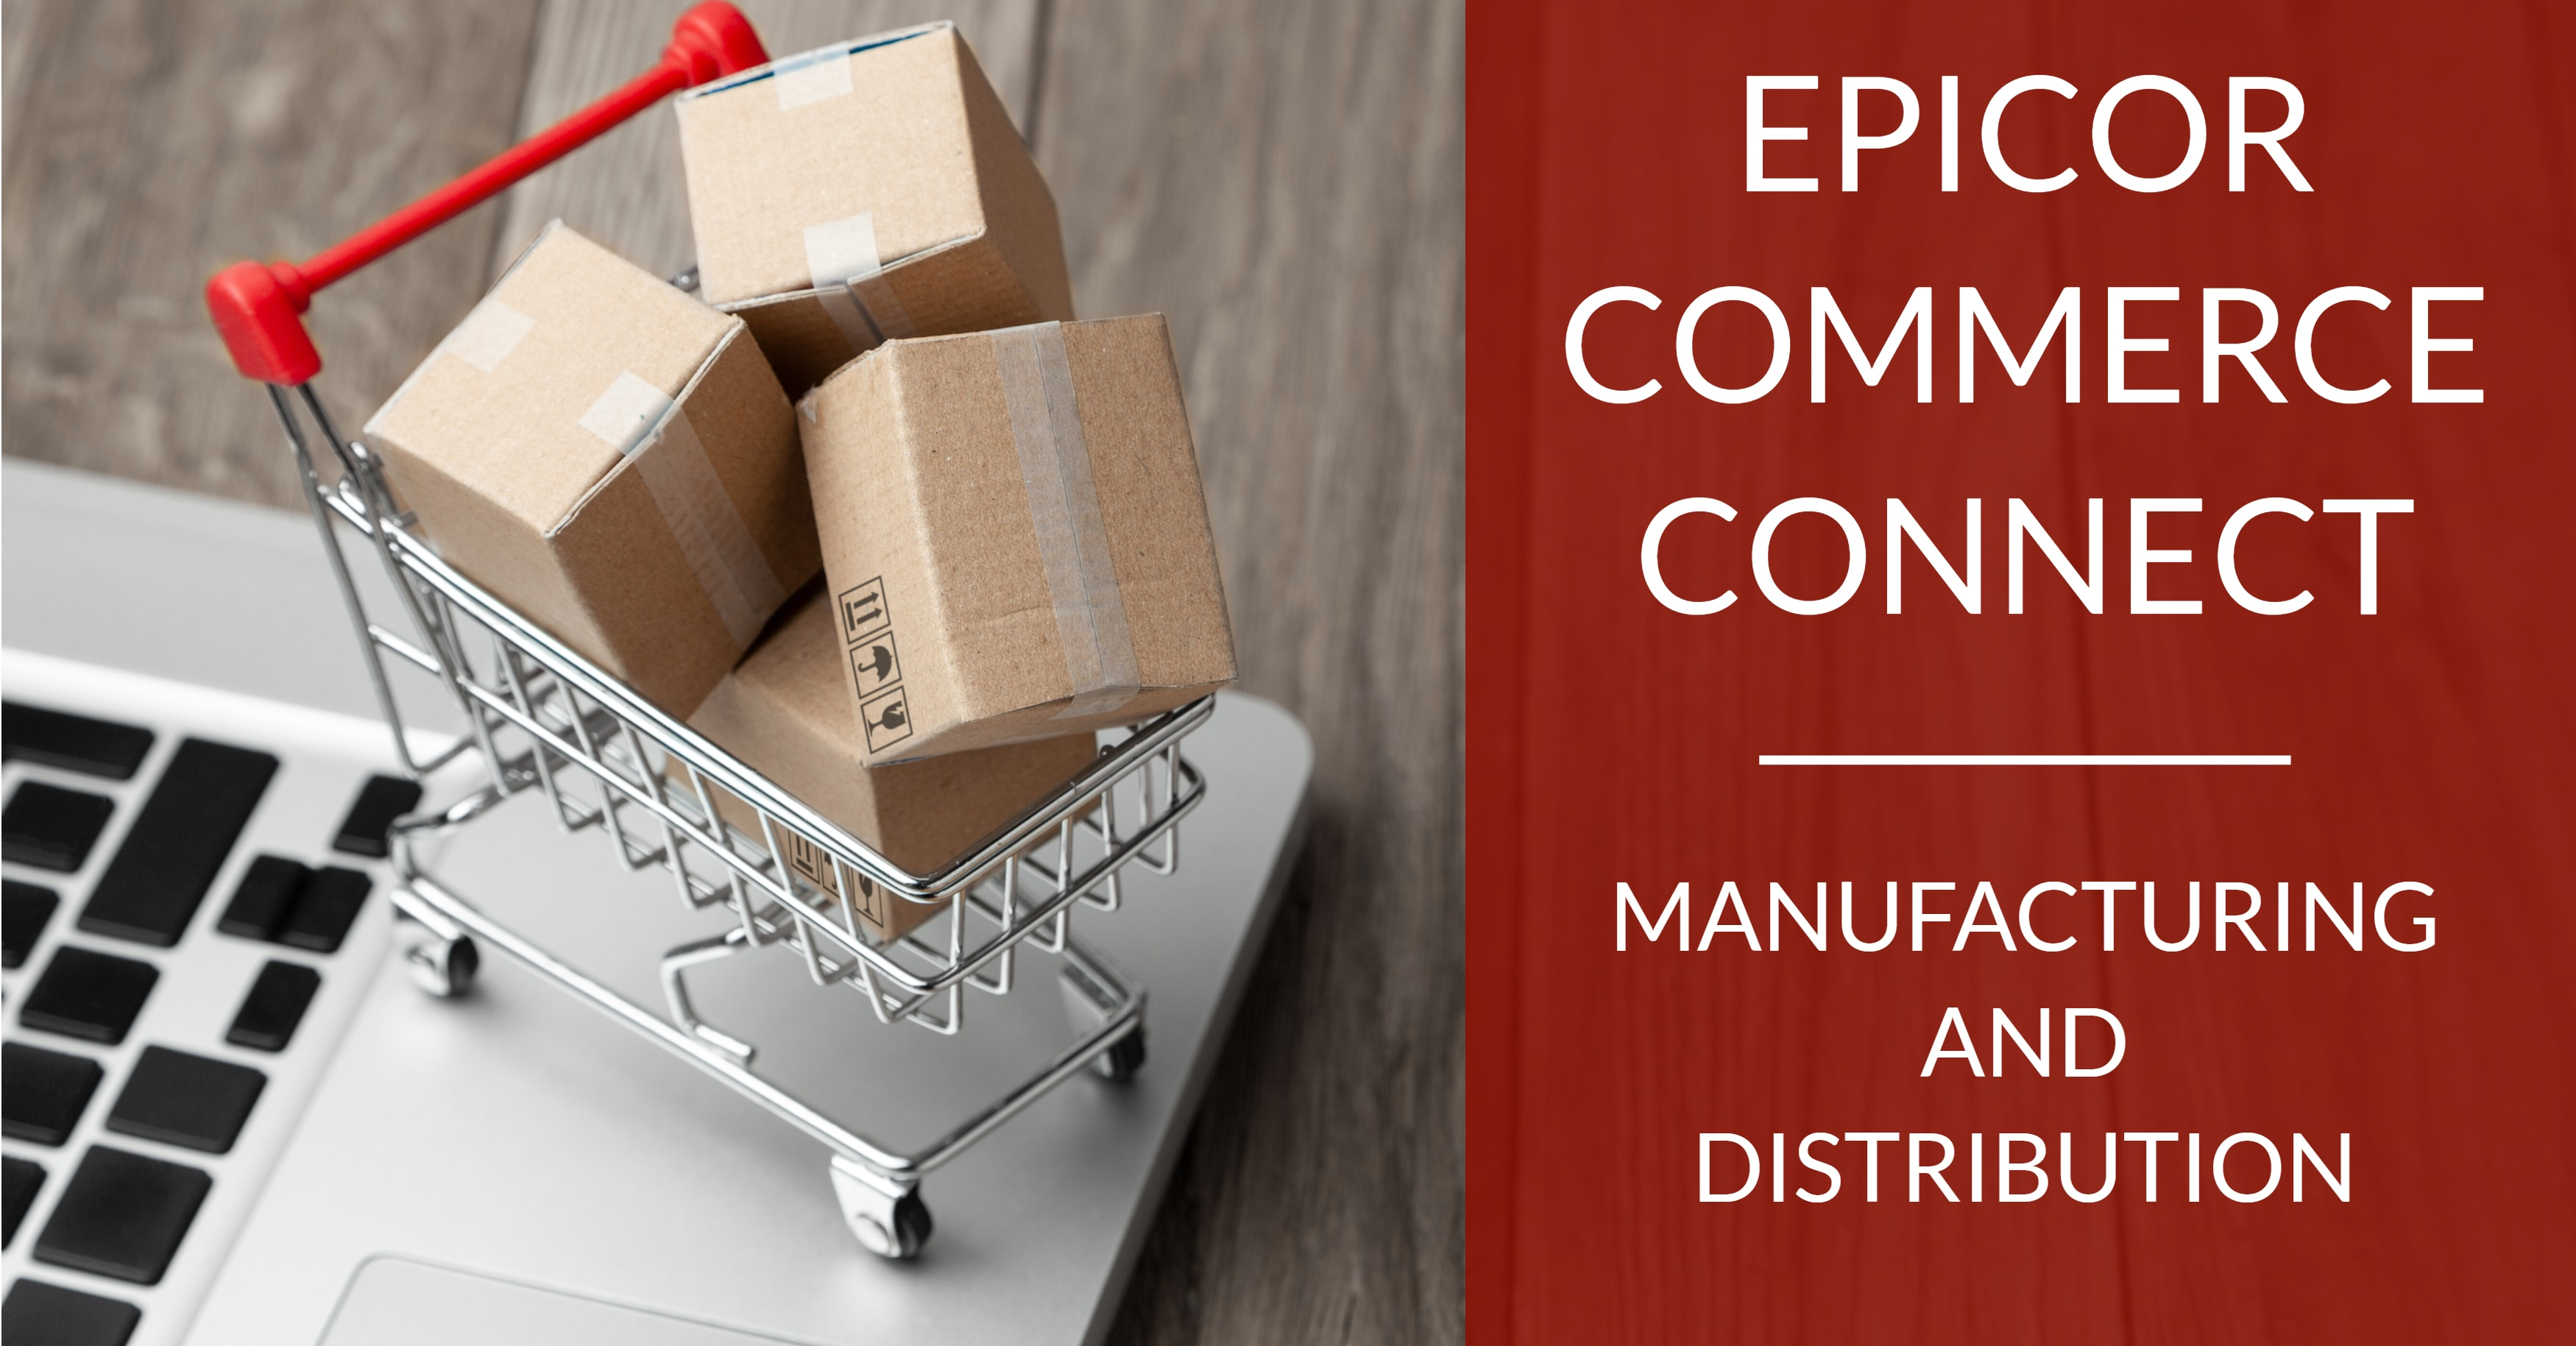 Epicor Commerce Connect for Manufacturing & Distribution